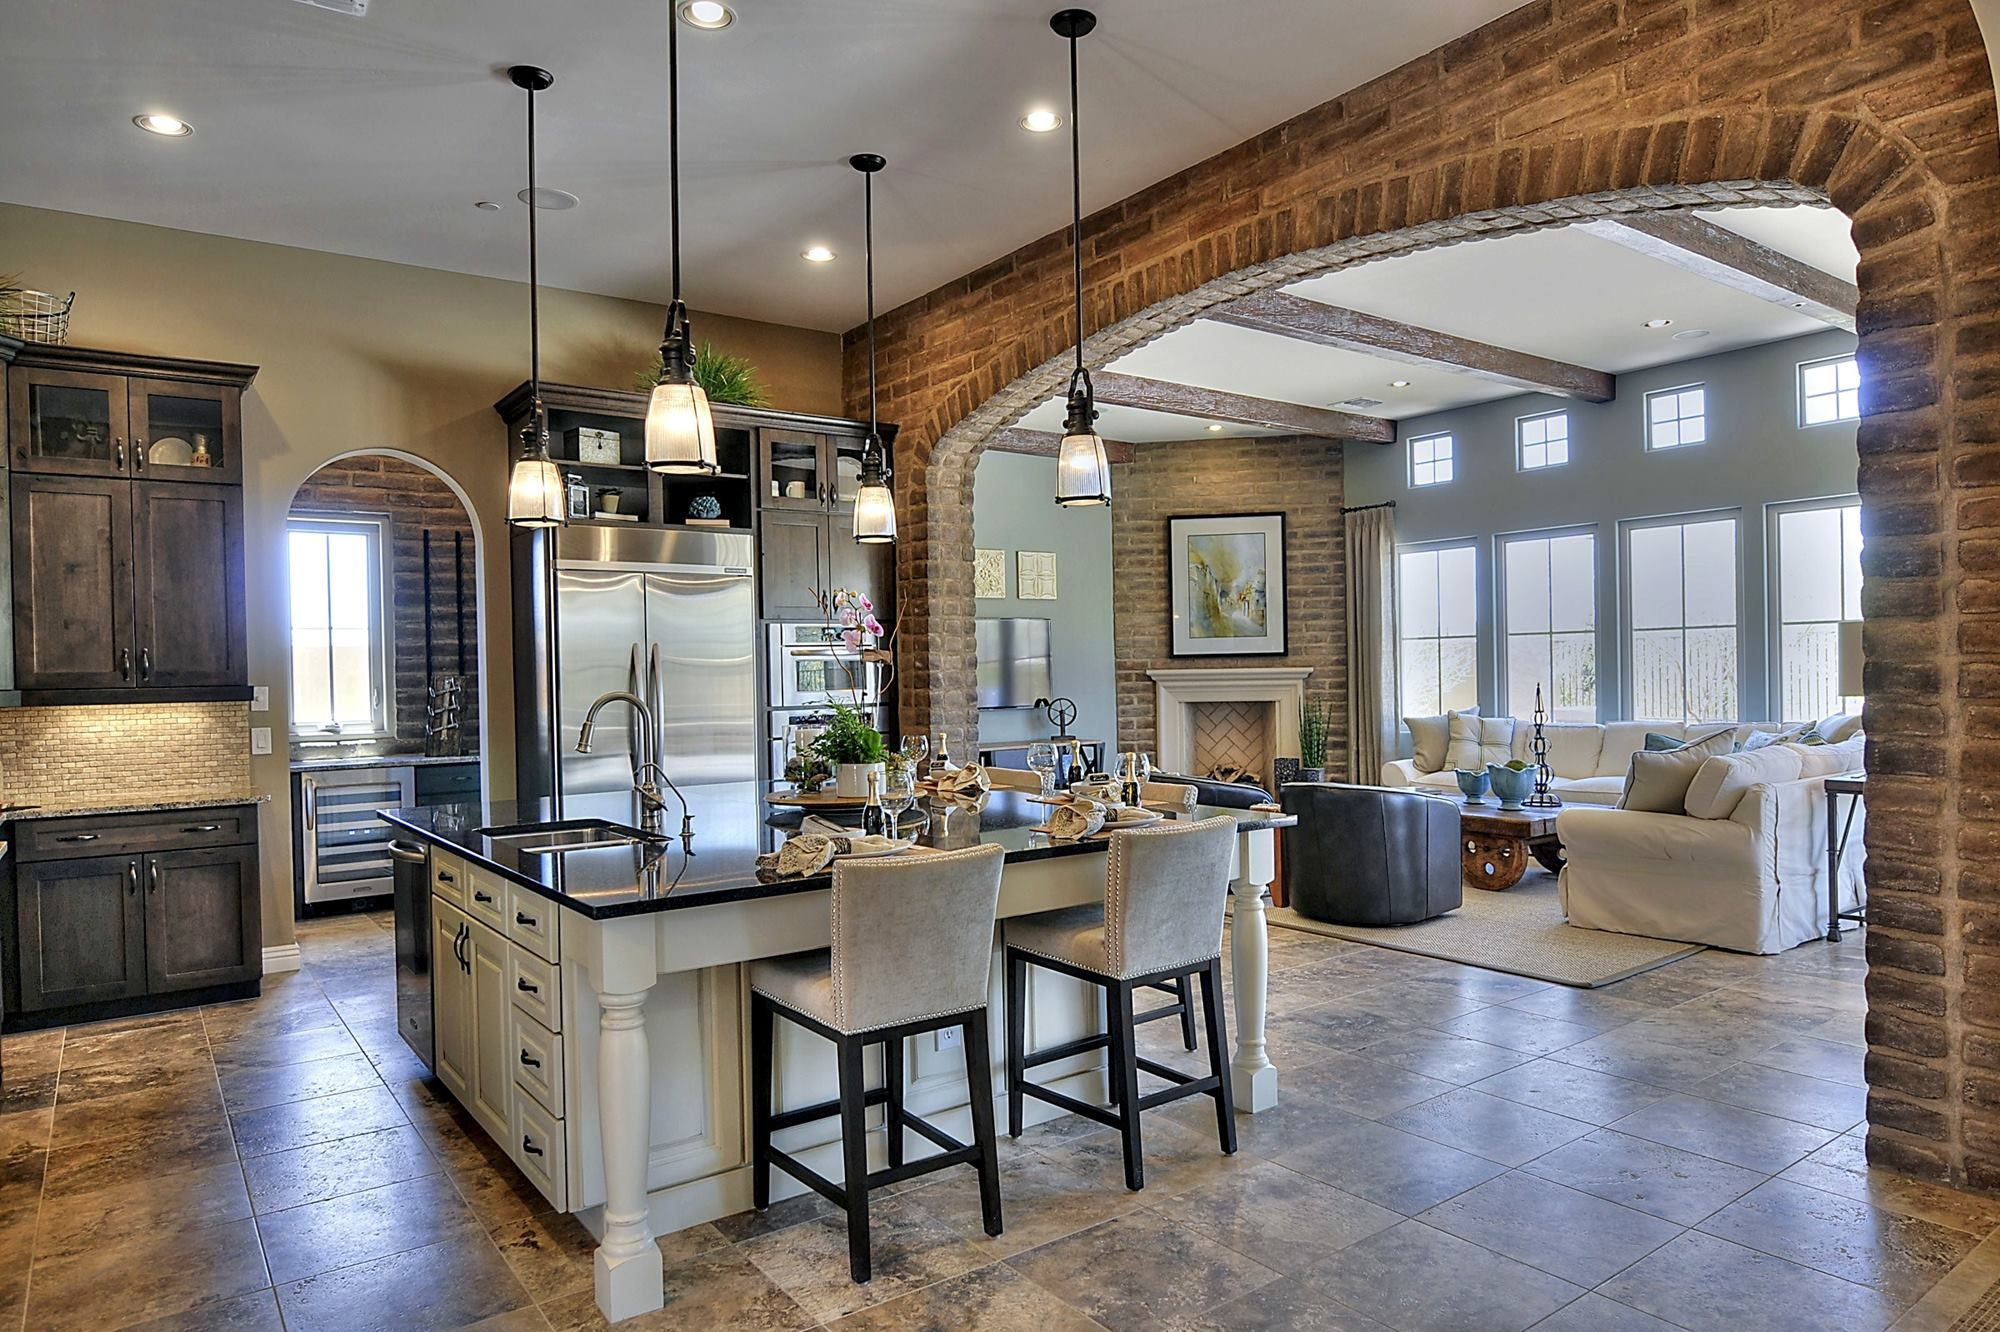 Arch To Separate Kitchen And Living Areas Brick New Homes